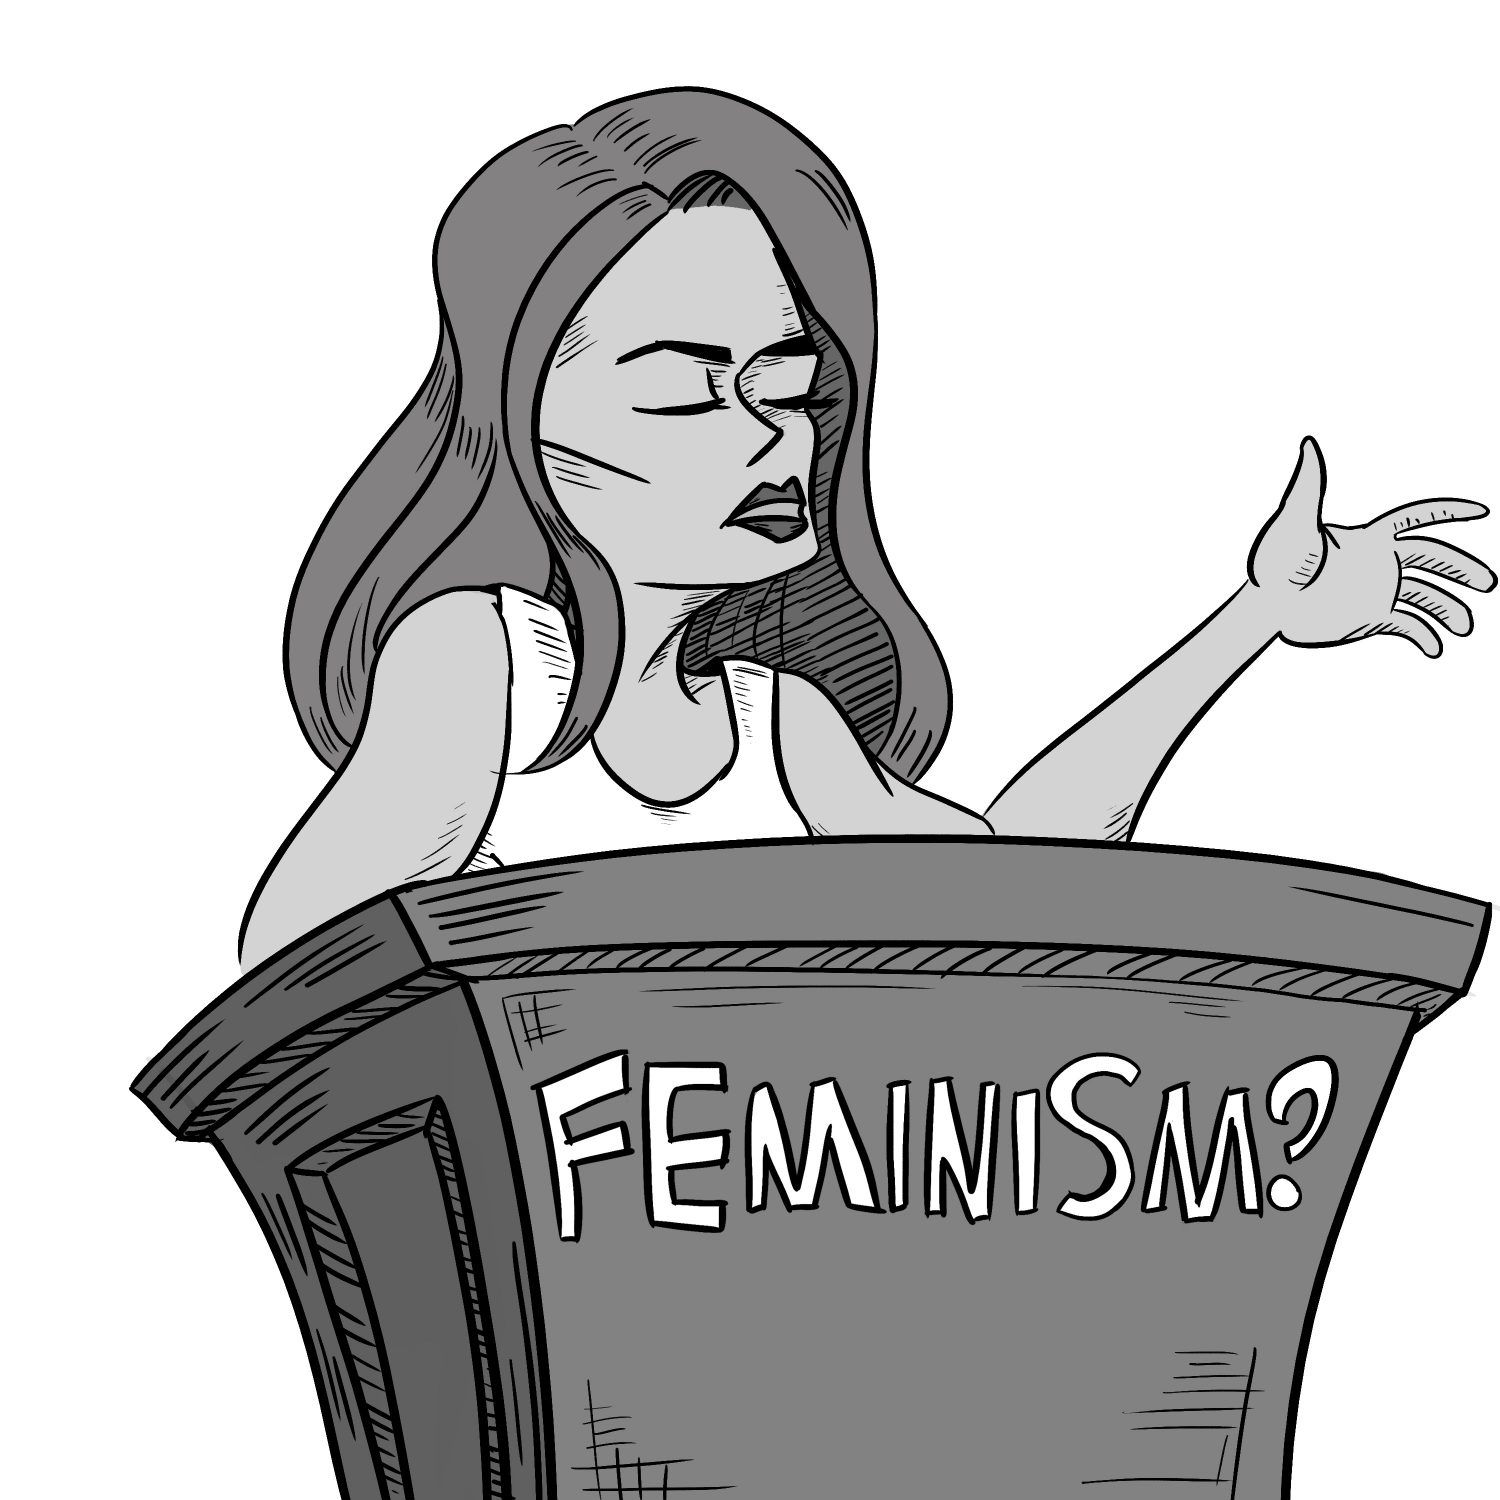 ferminism Feminism: what is it feminism is an interdisciplinary approach to issues of equality and equity based on gender, gender expression, gender identity, sex, and sexuality as understood through social theories and political activism.